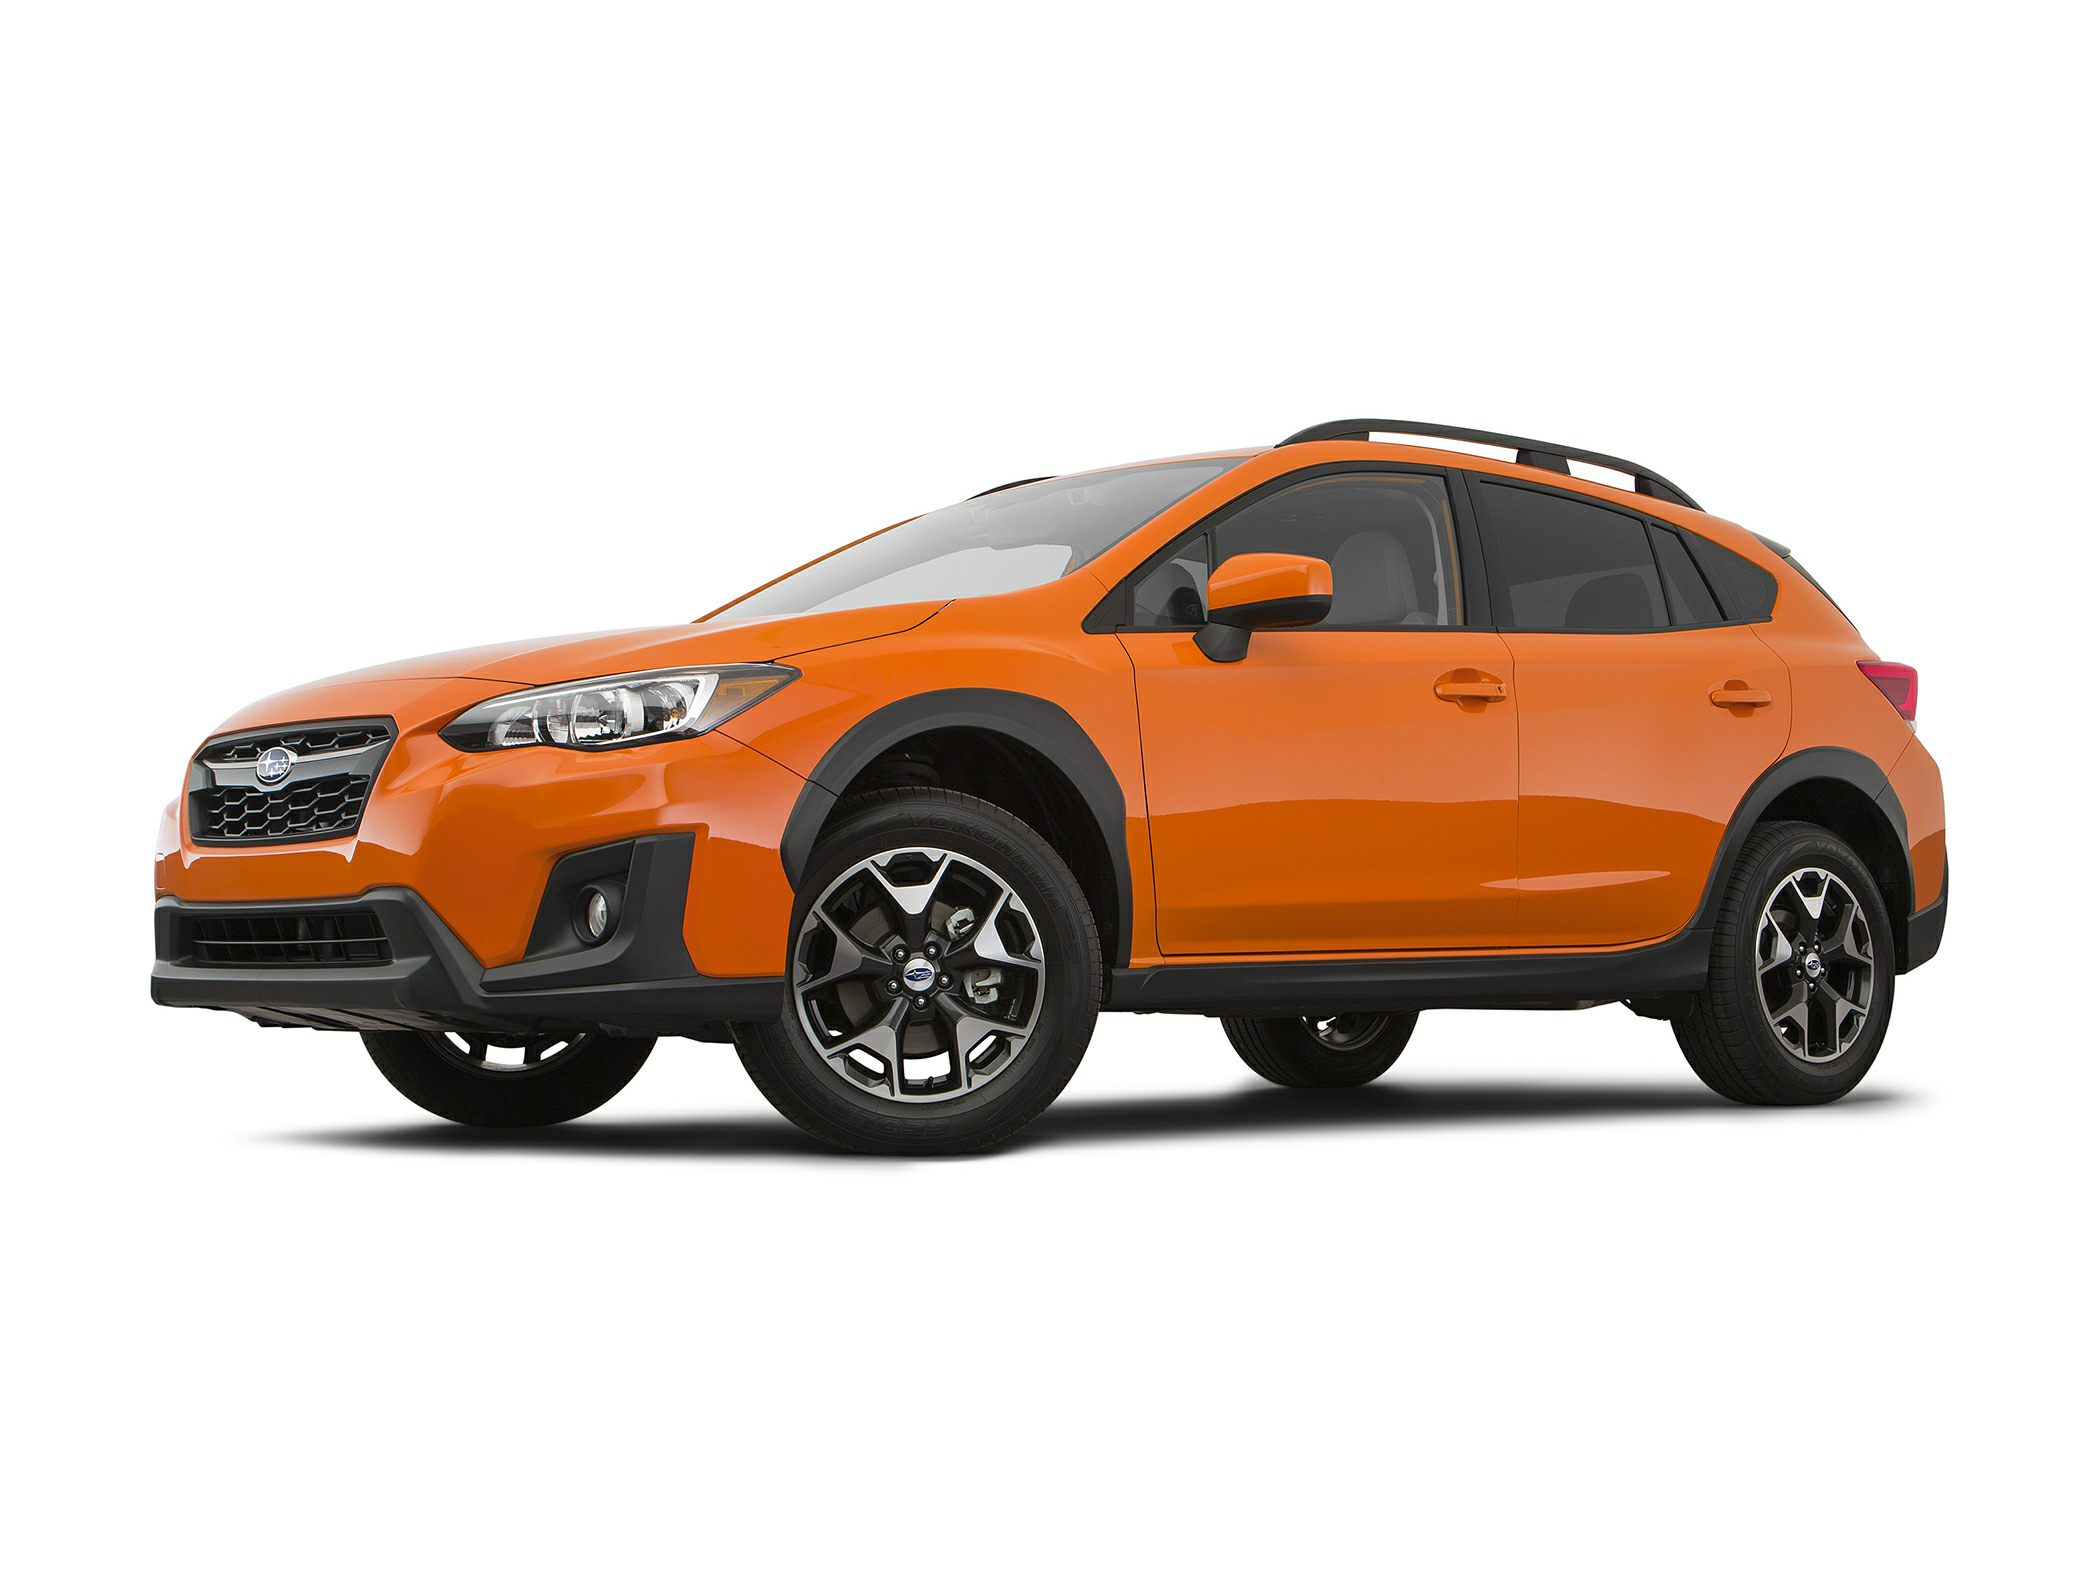 2018 Subaru Crosstrek Deals Prices Incentives & Leases